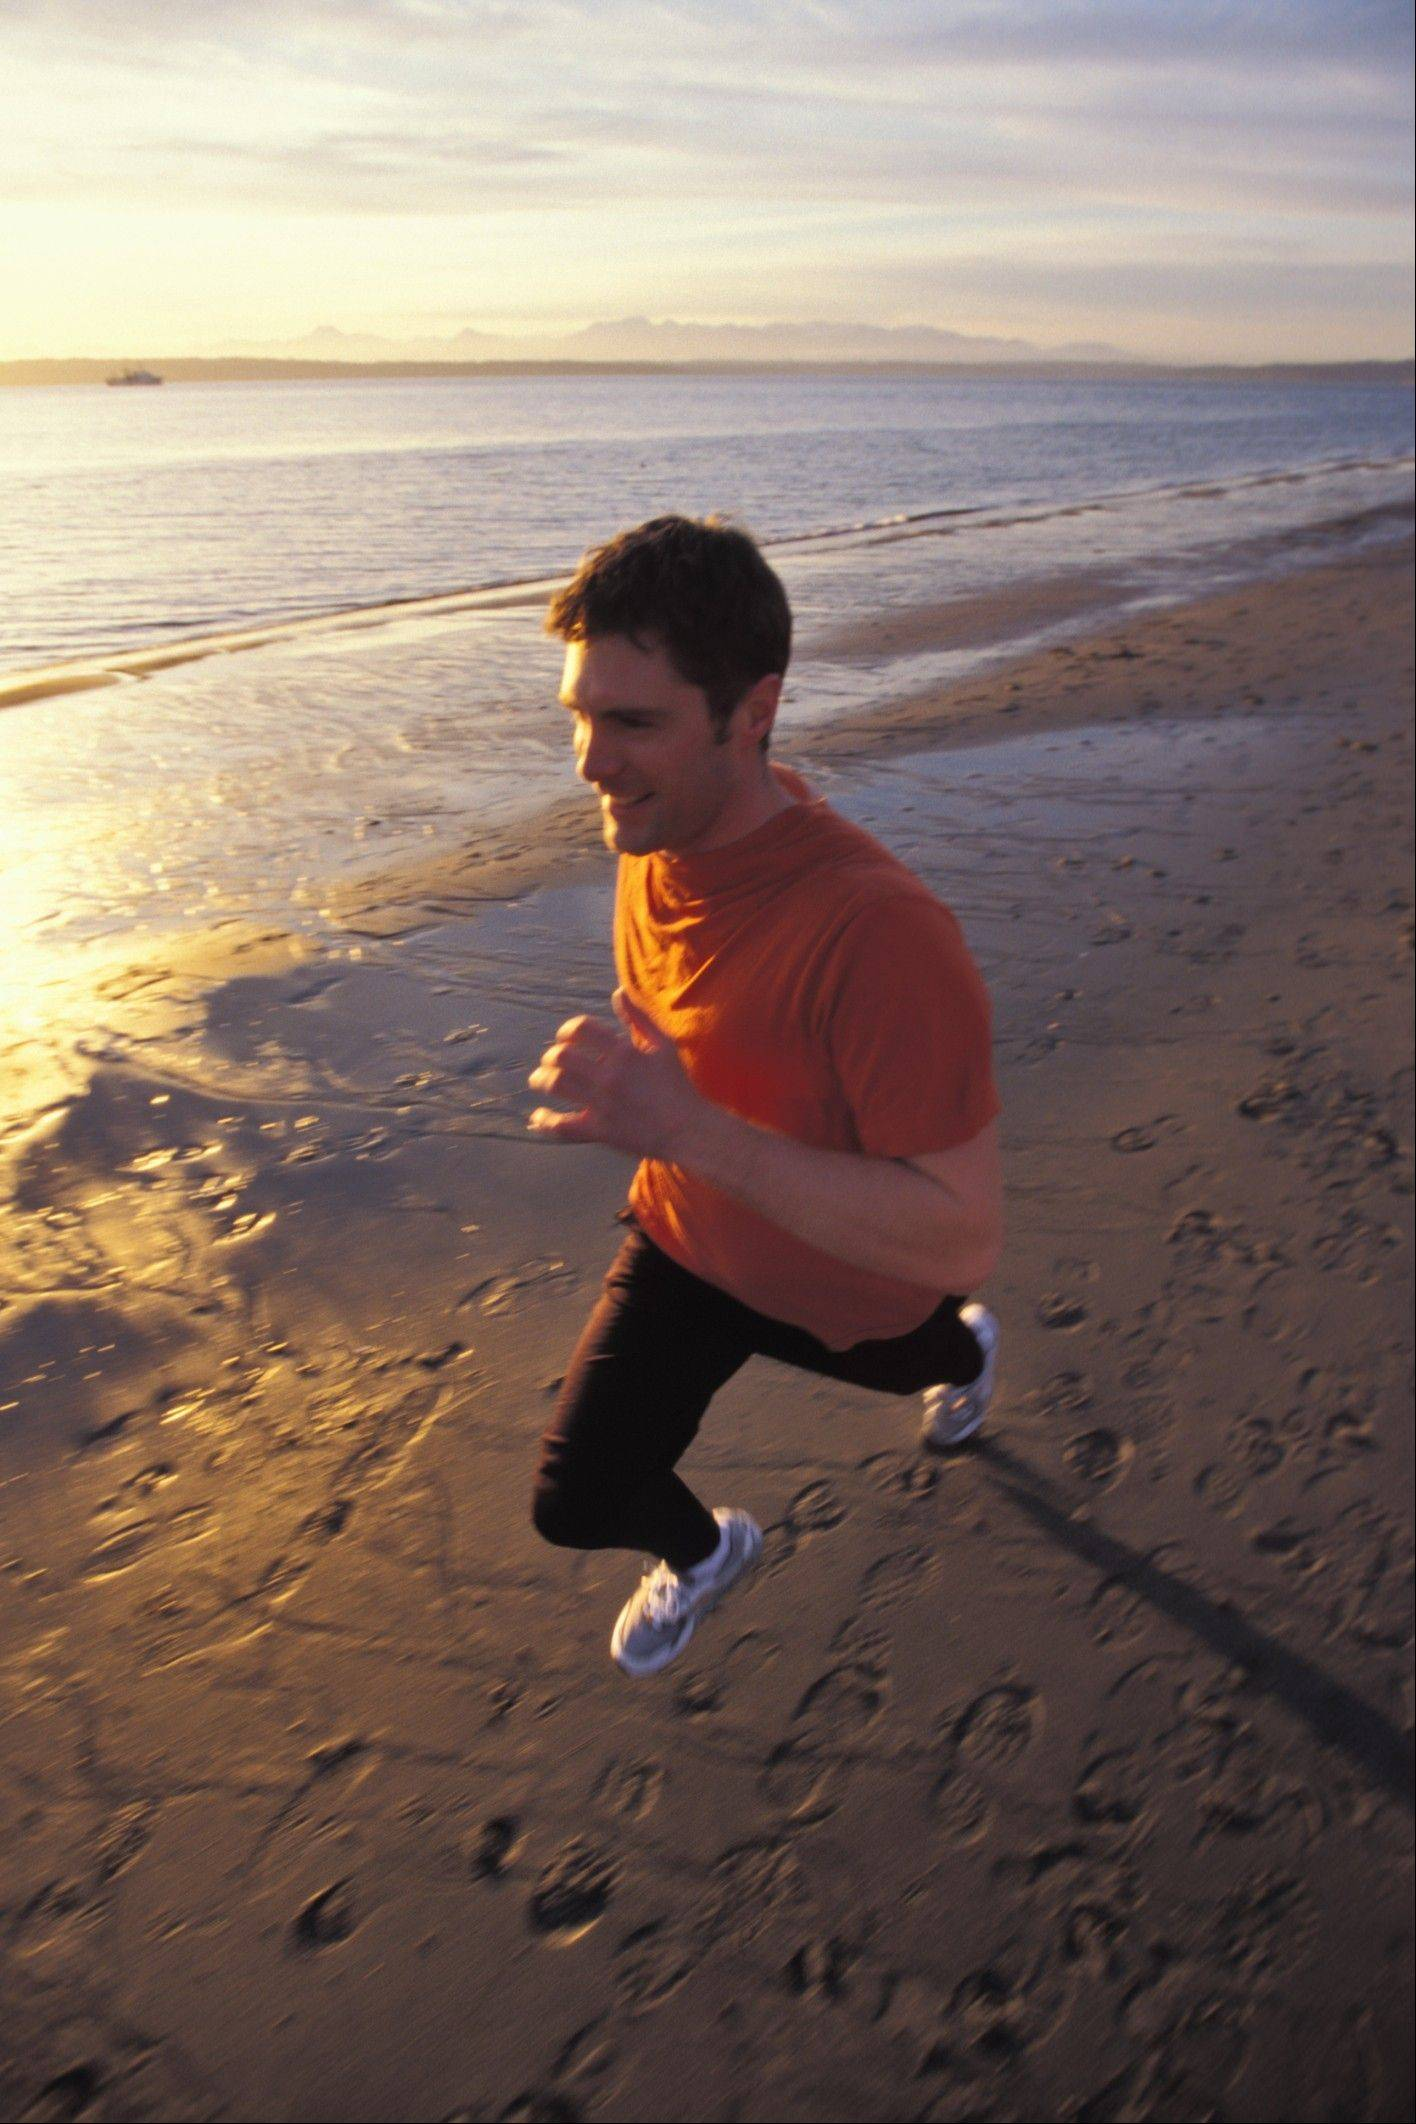 Some experts say running on the sand will burn up to 50 percent more calories than running on pavement.